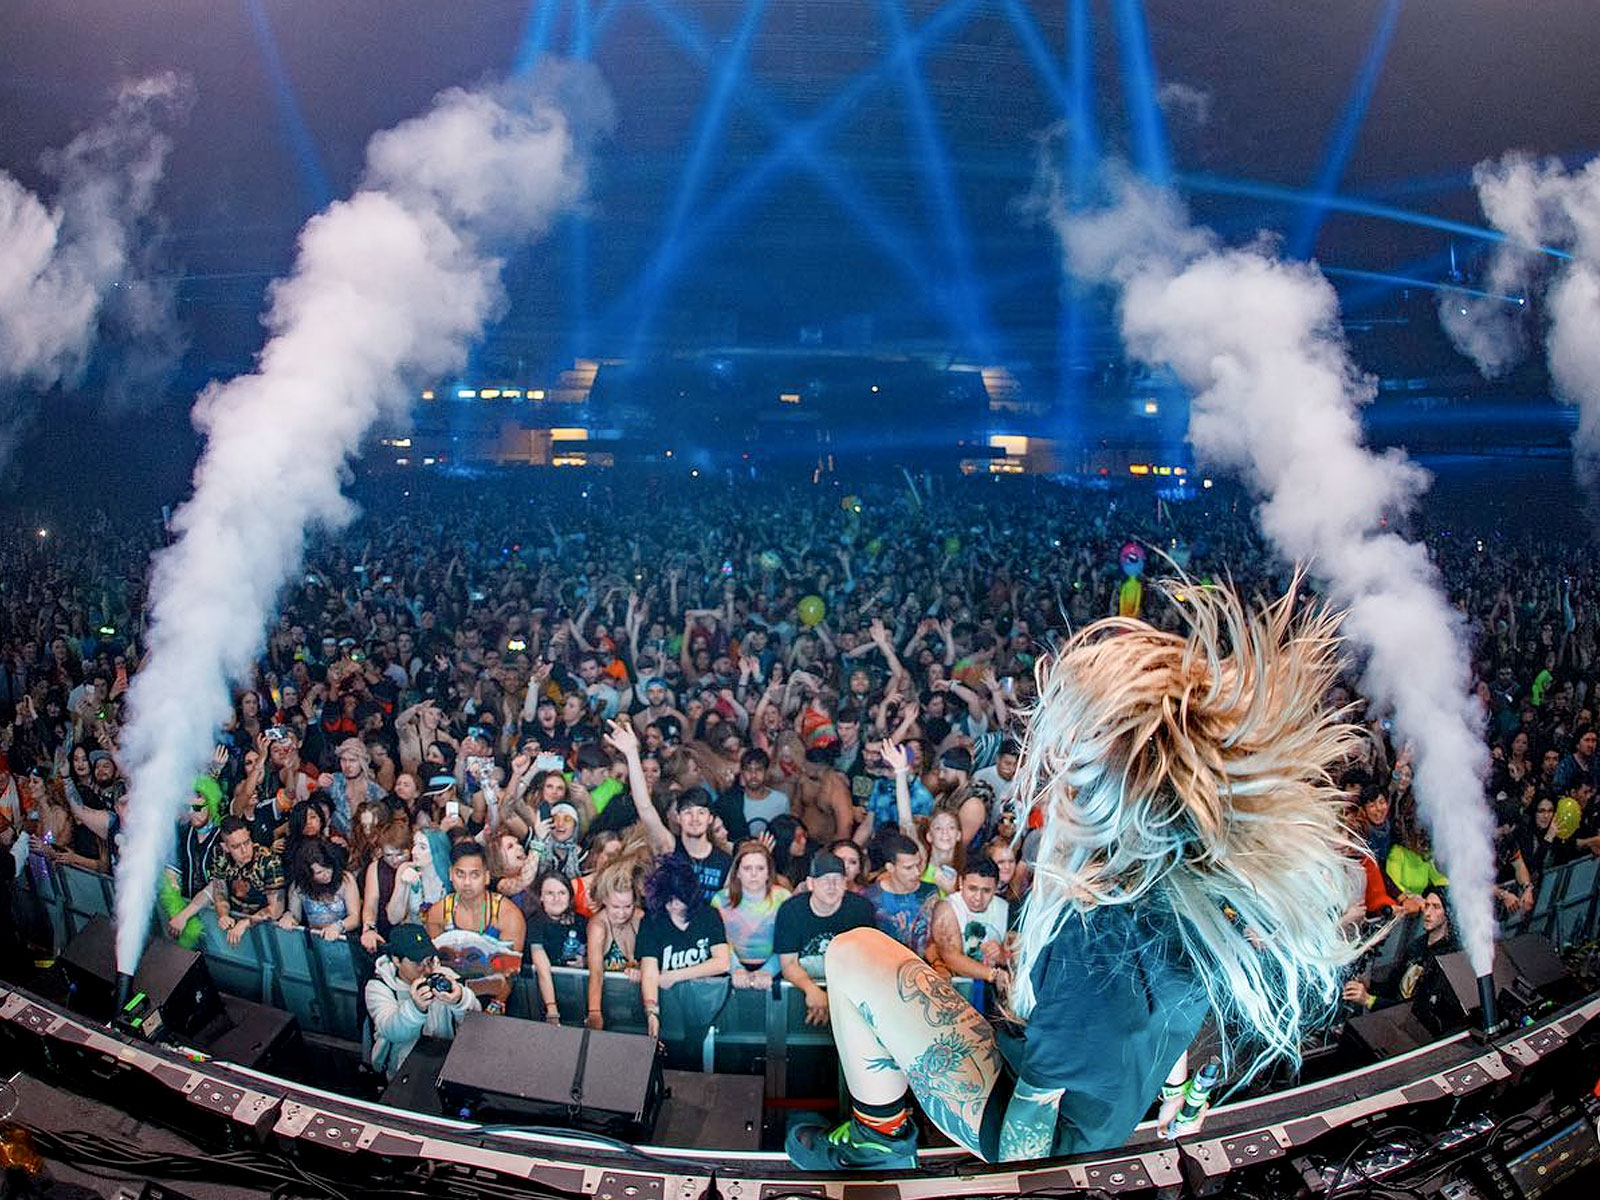 Feature: 10 EDM Artists To Watch In 2021 - OZ EDM